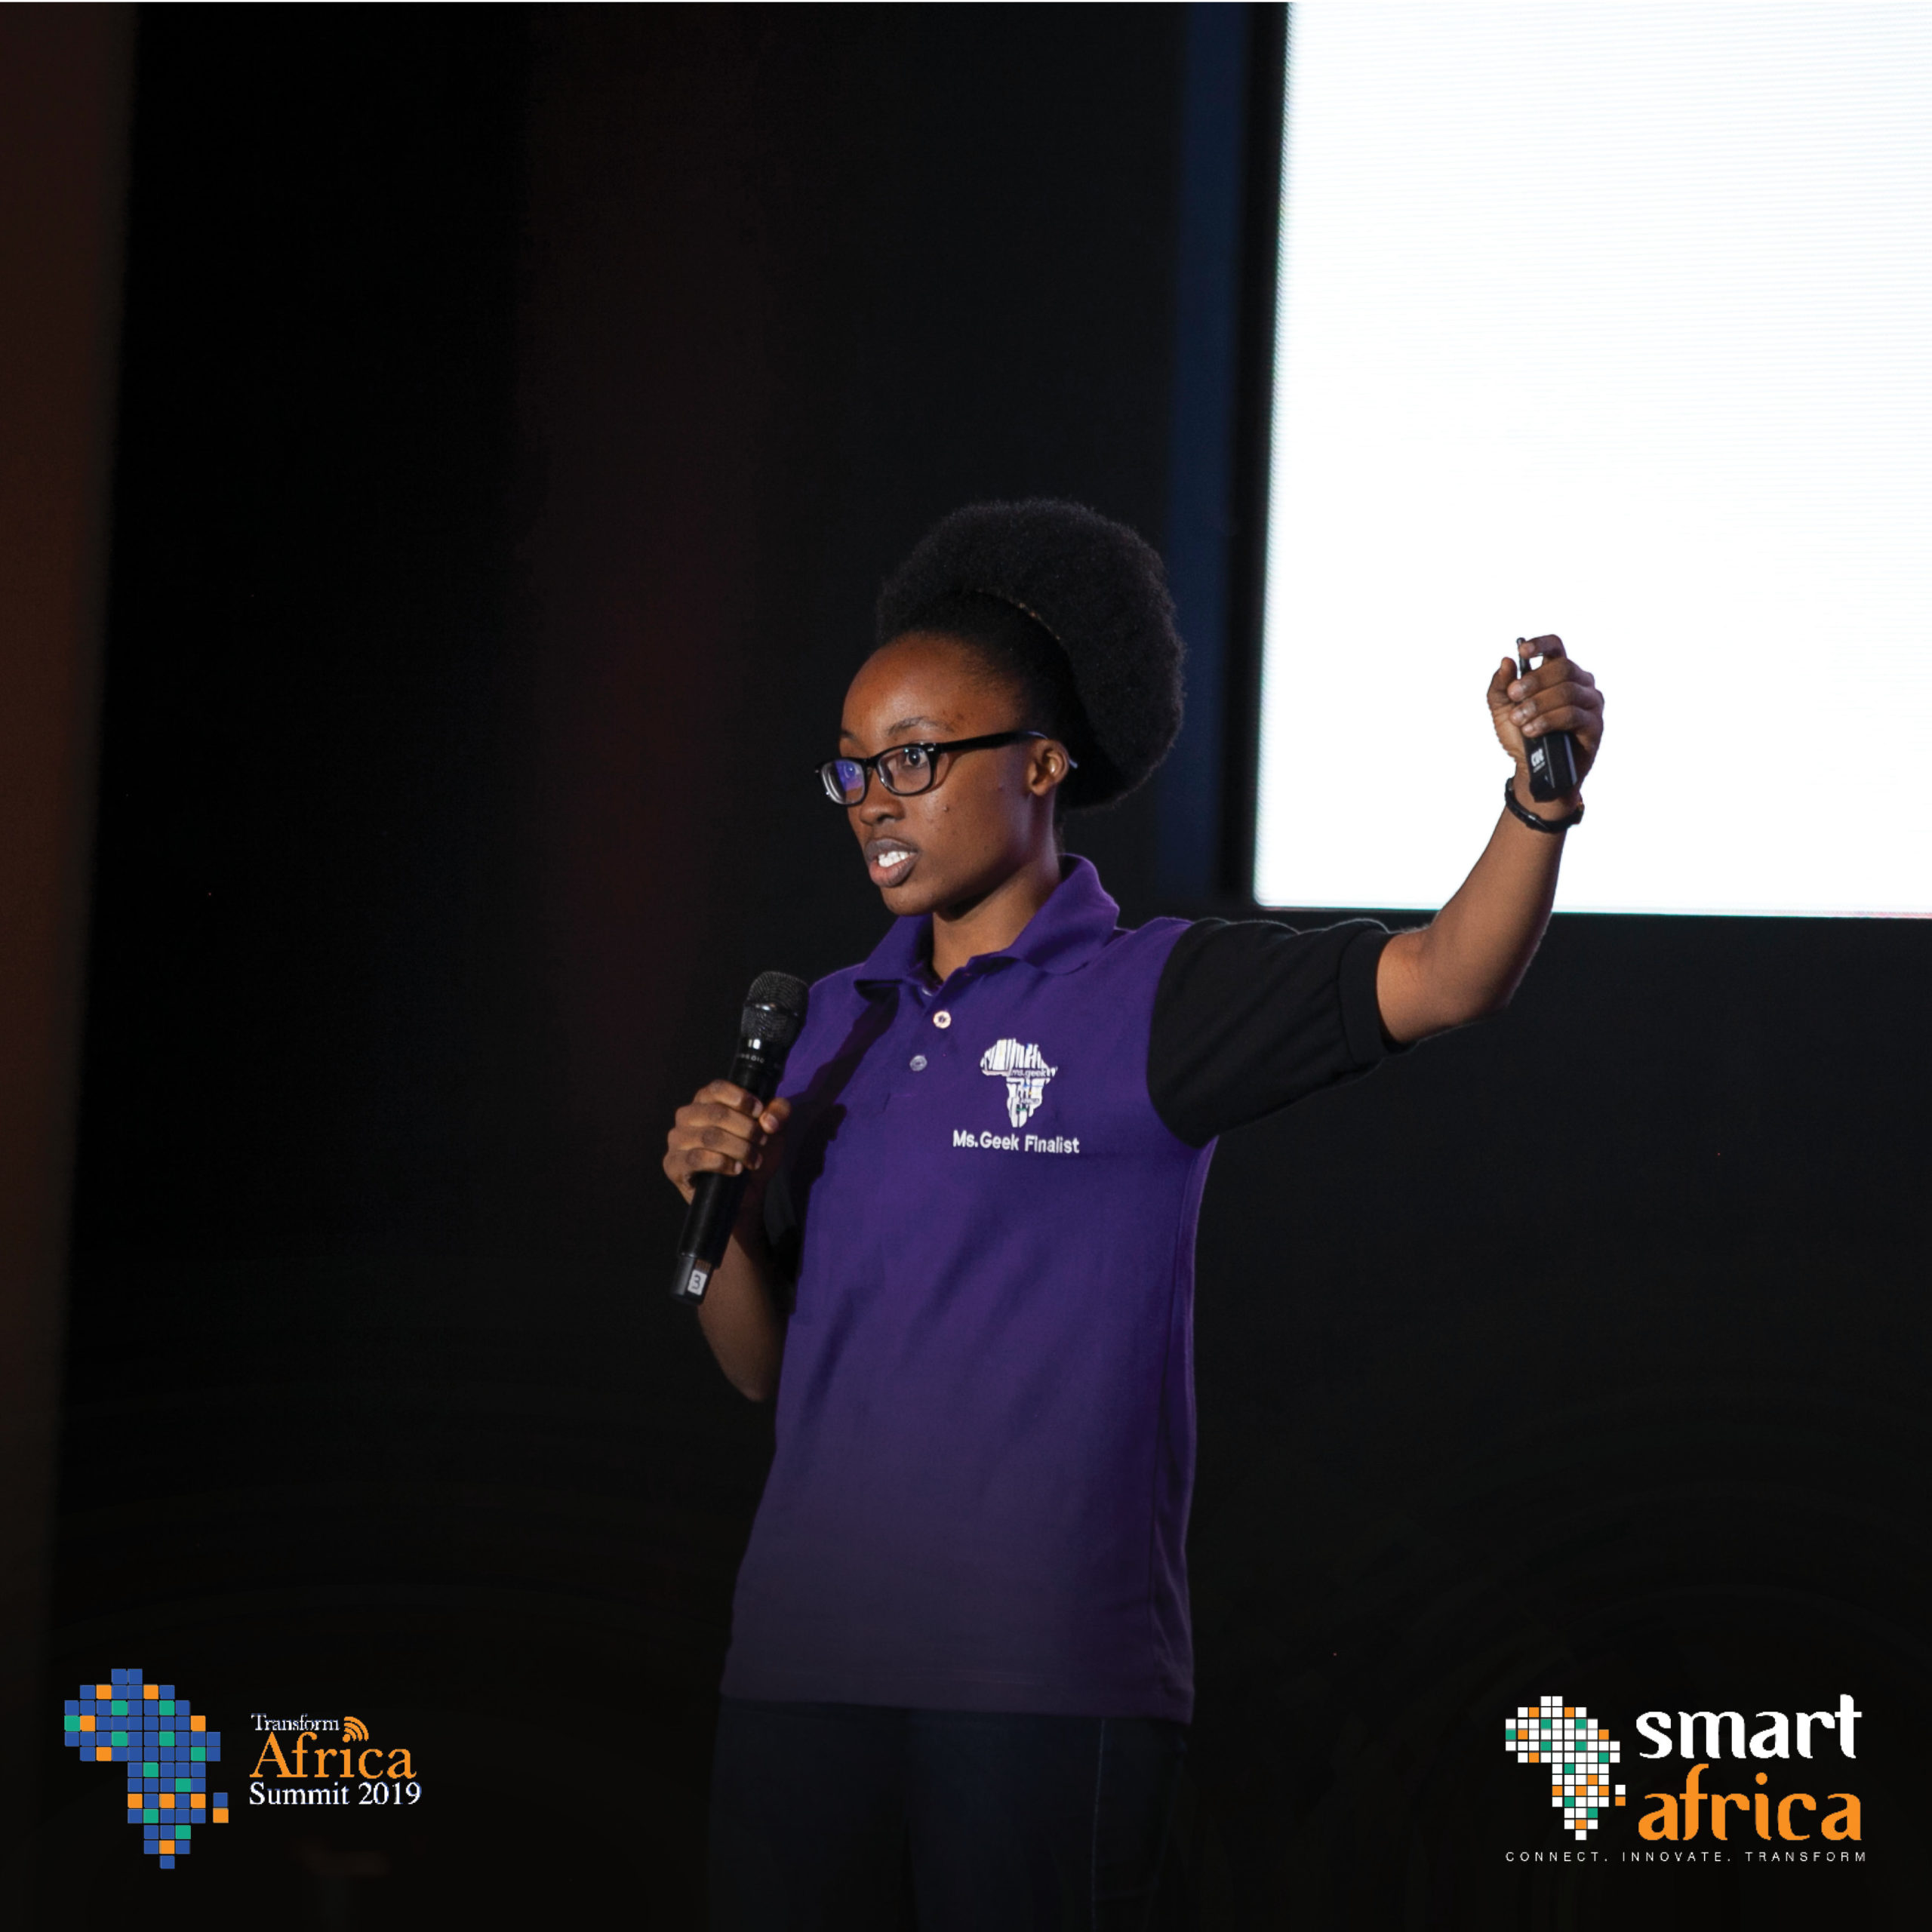 Impressions from the Transform Africa Summit 2019